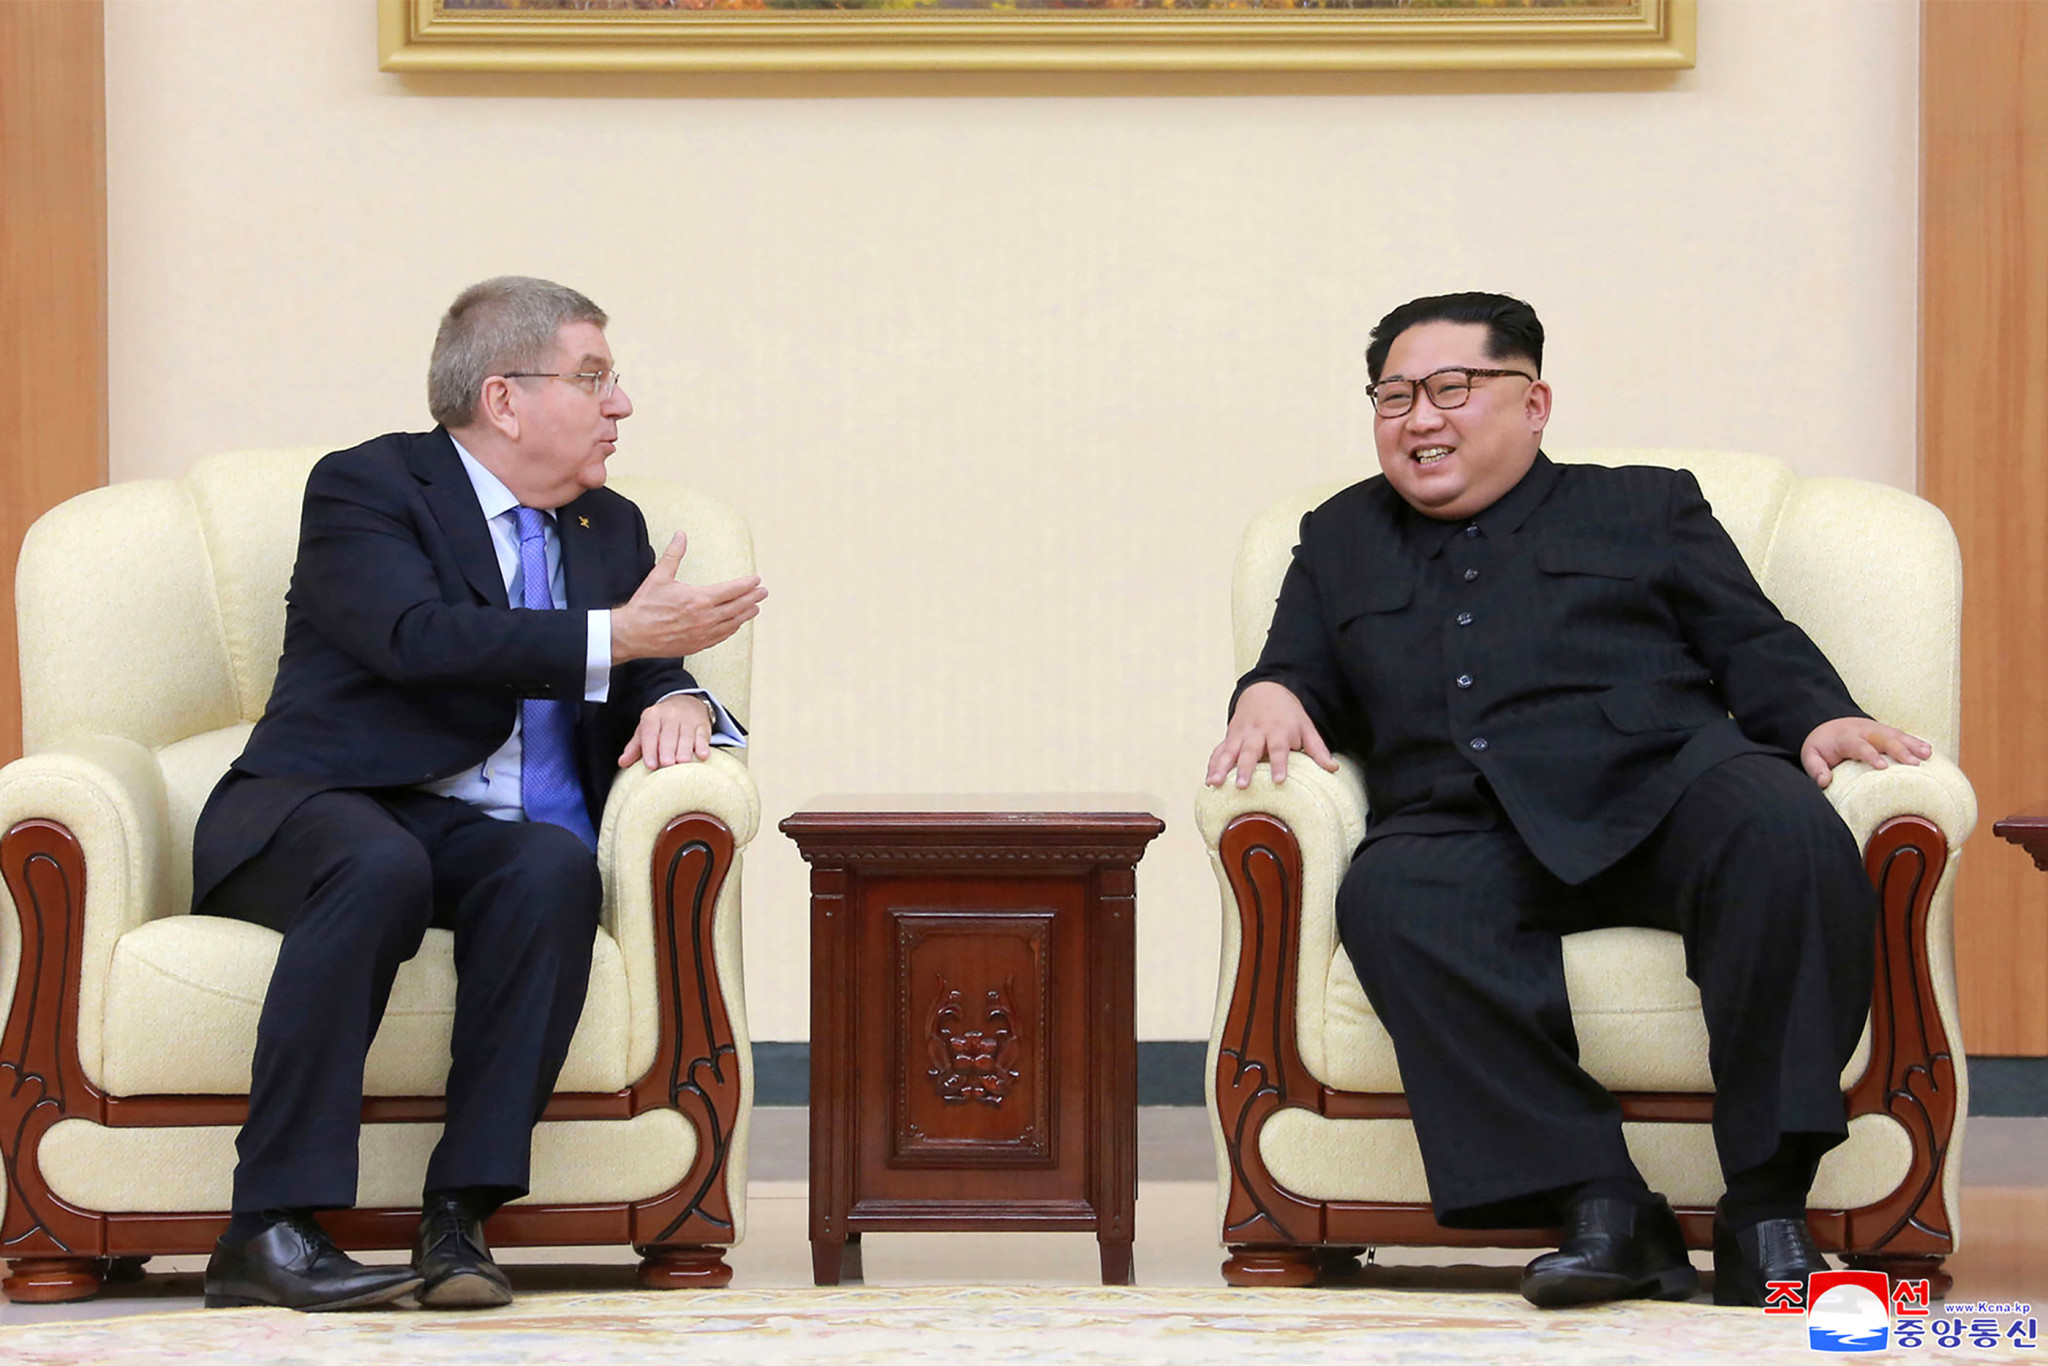 IOC President Thomas Bach, left, alongside North Korean Supreme Leader Kim Jong-Un ©Getty Images